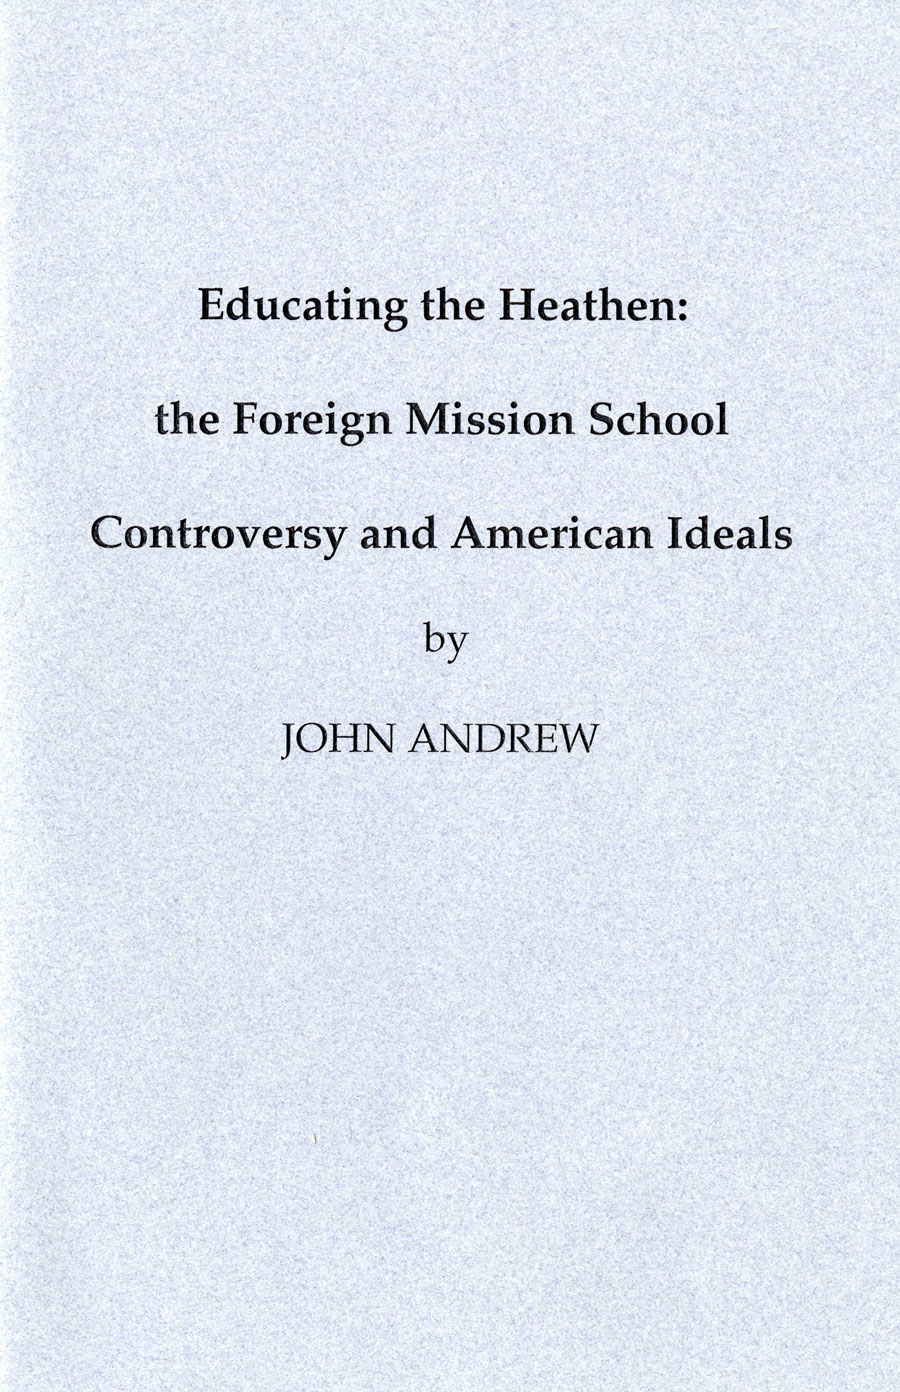 Educating the Heathen: the Foreign Mission School Controversy and American Ideals